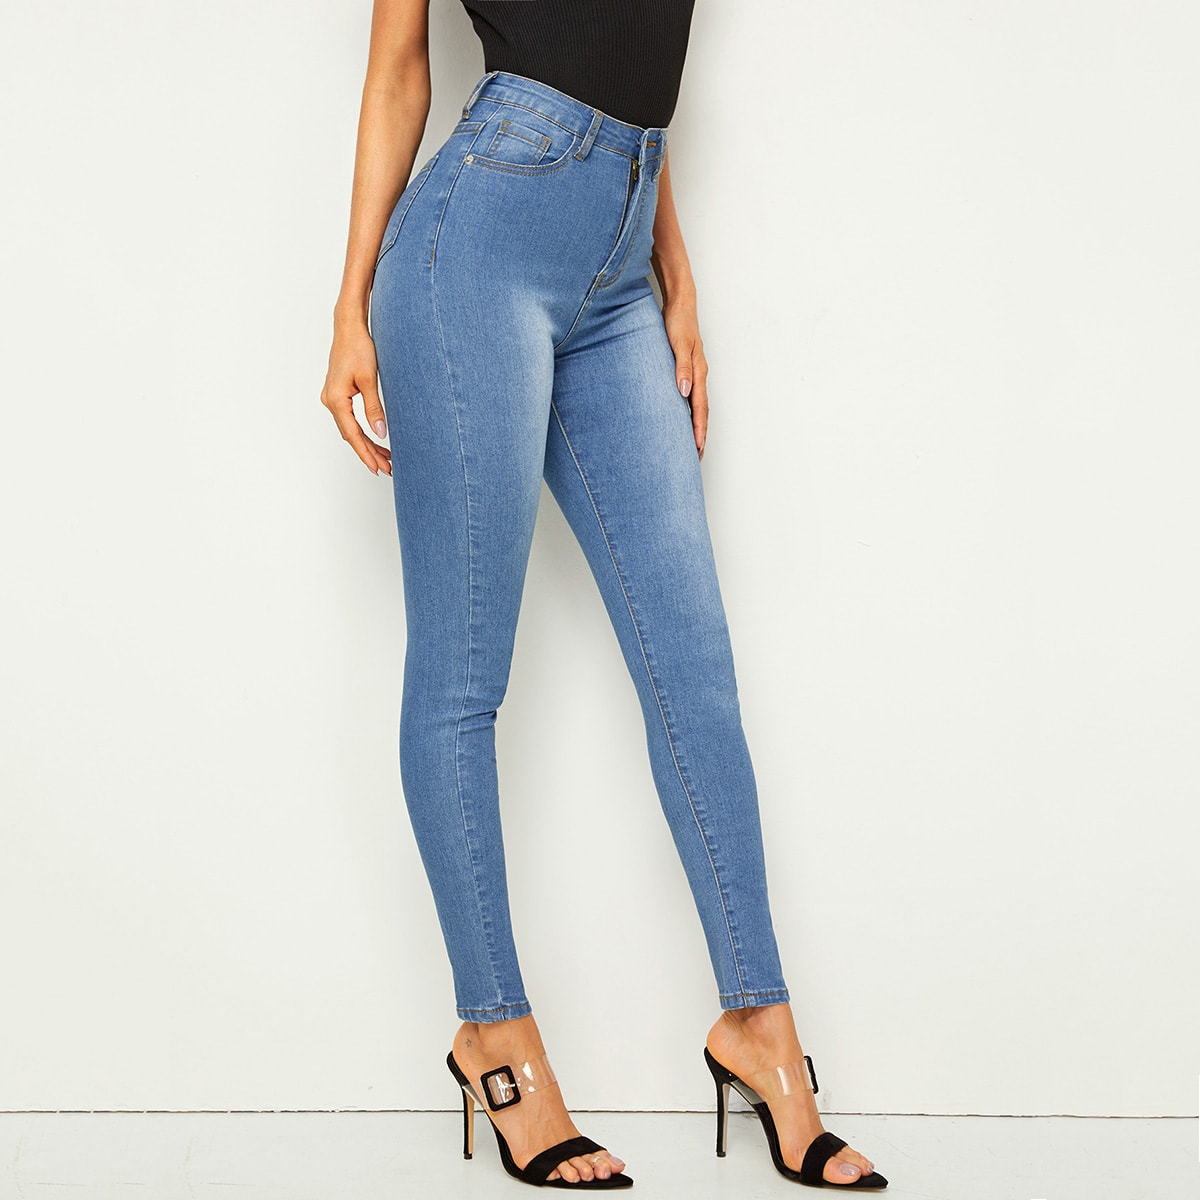 Blauw Casual jeans Knoop